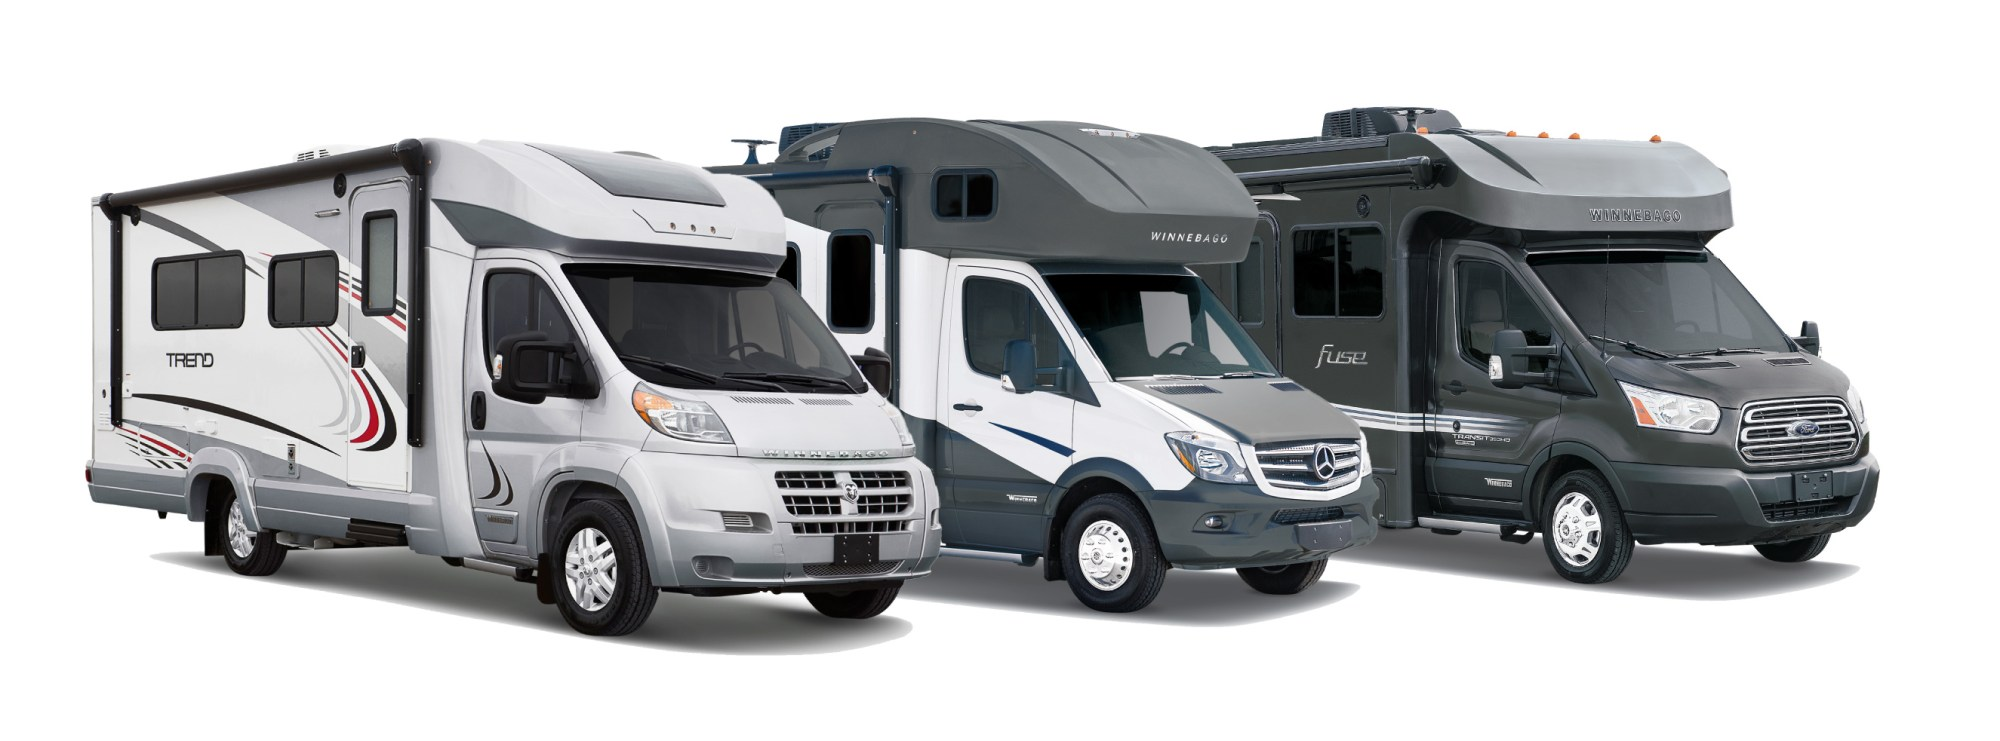 hight resolution of winnebago has several very popular compact class c rvs the trend fuse view and navion they come in at various price points lengths and chassis types